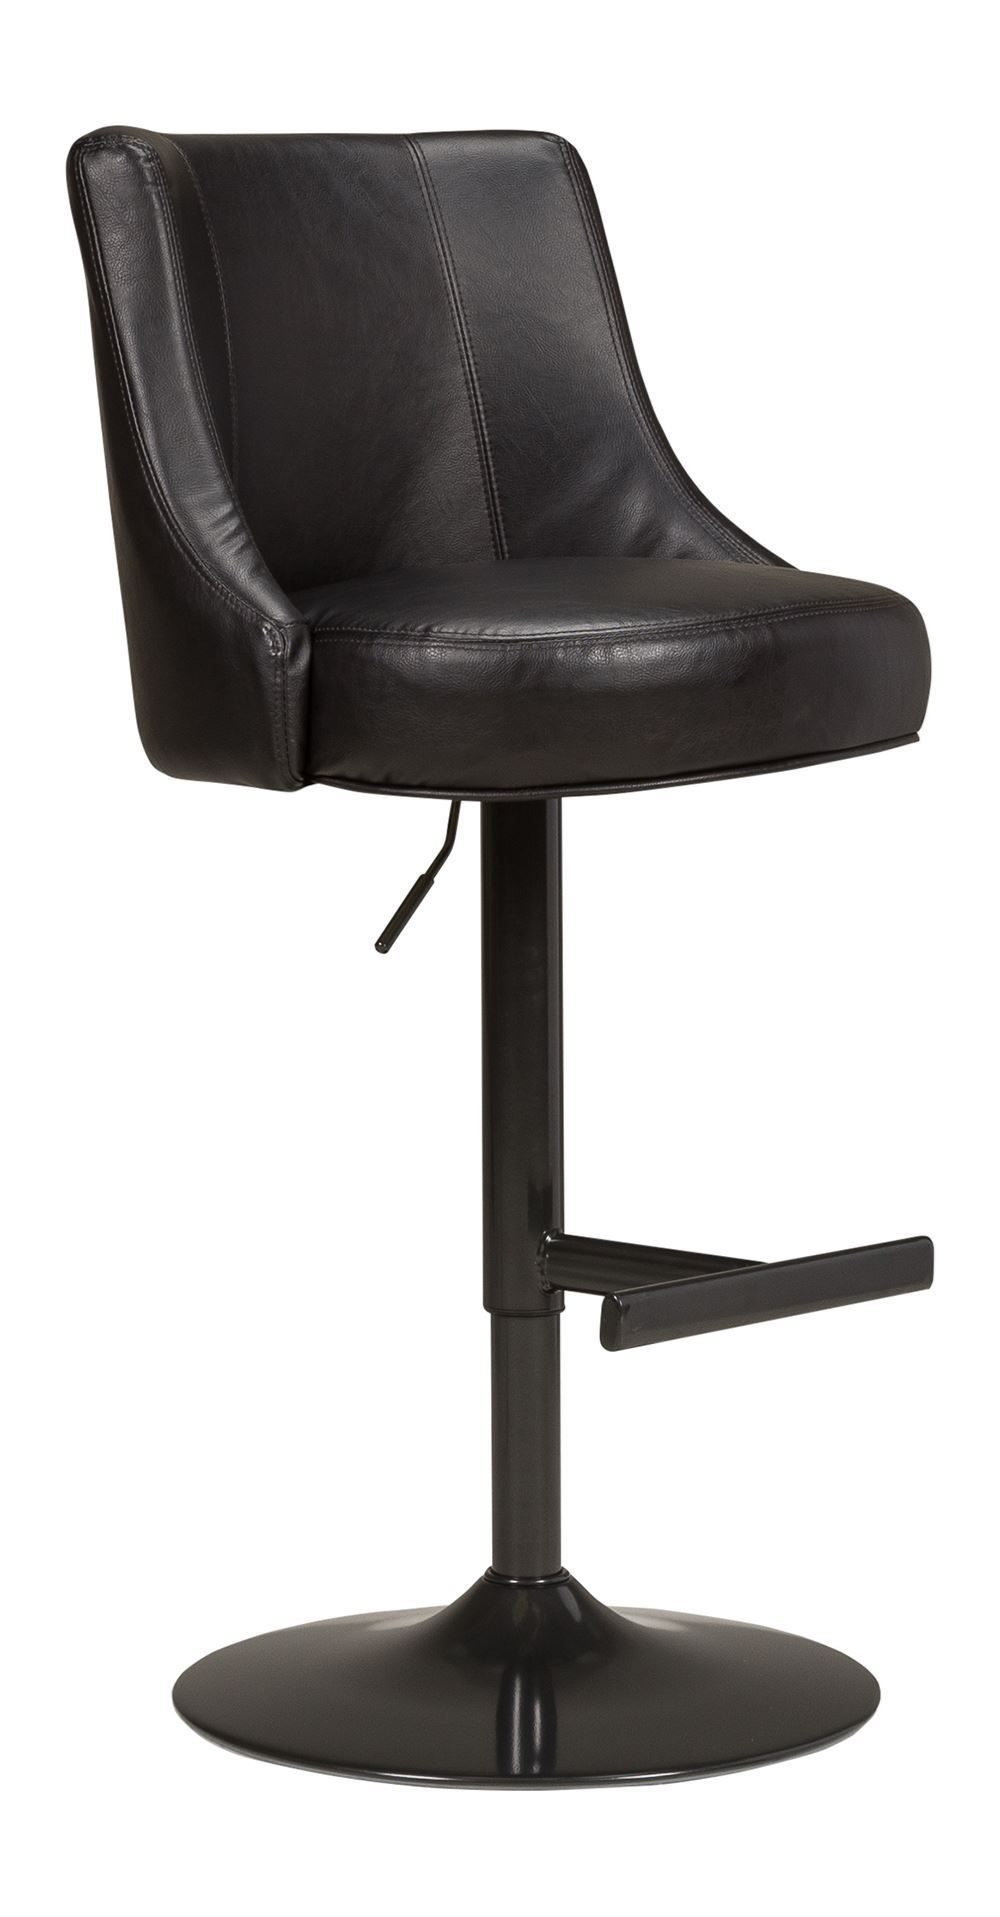 Picture of Biscayne Black and Bronze Swivel Stool